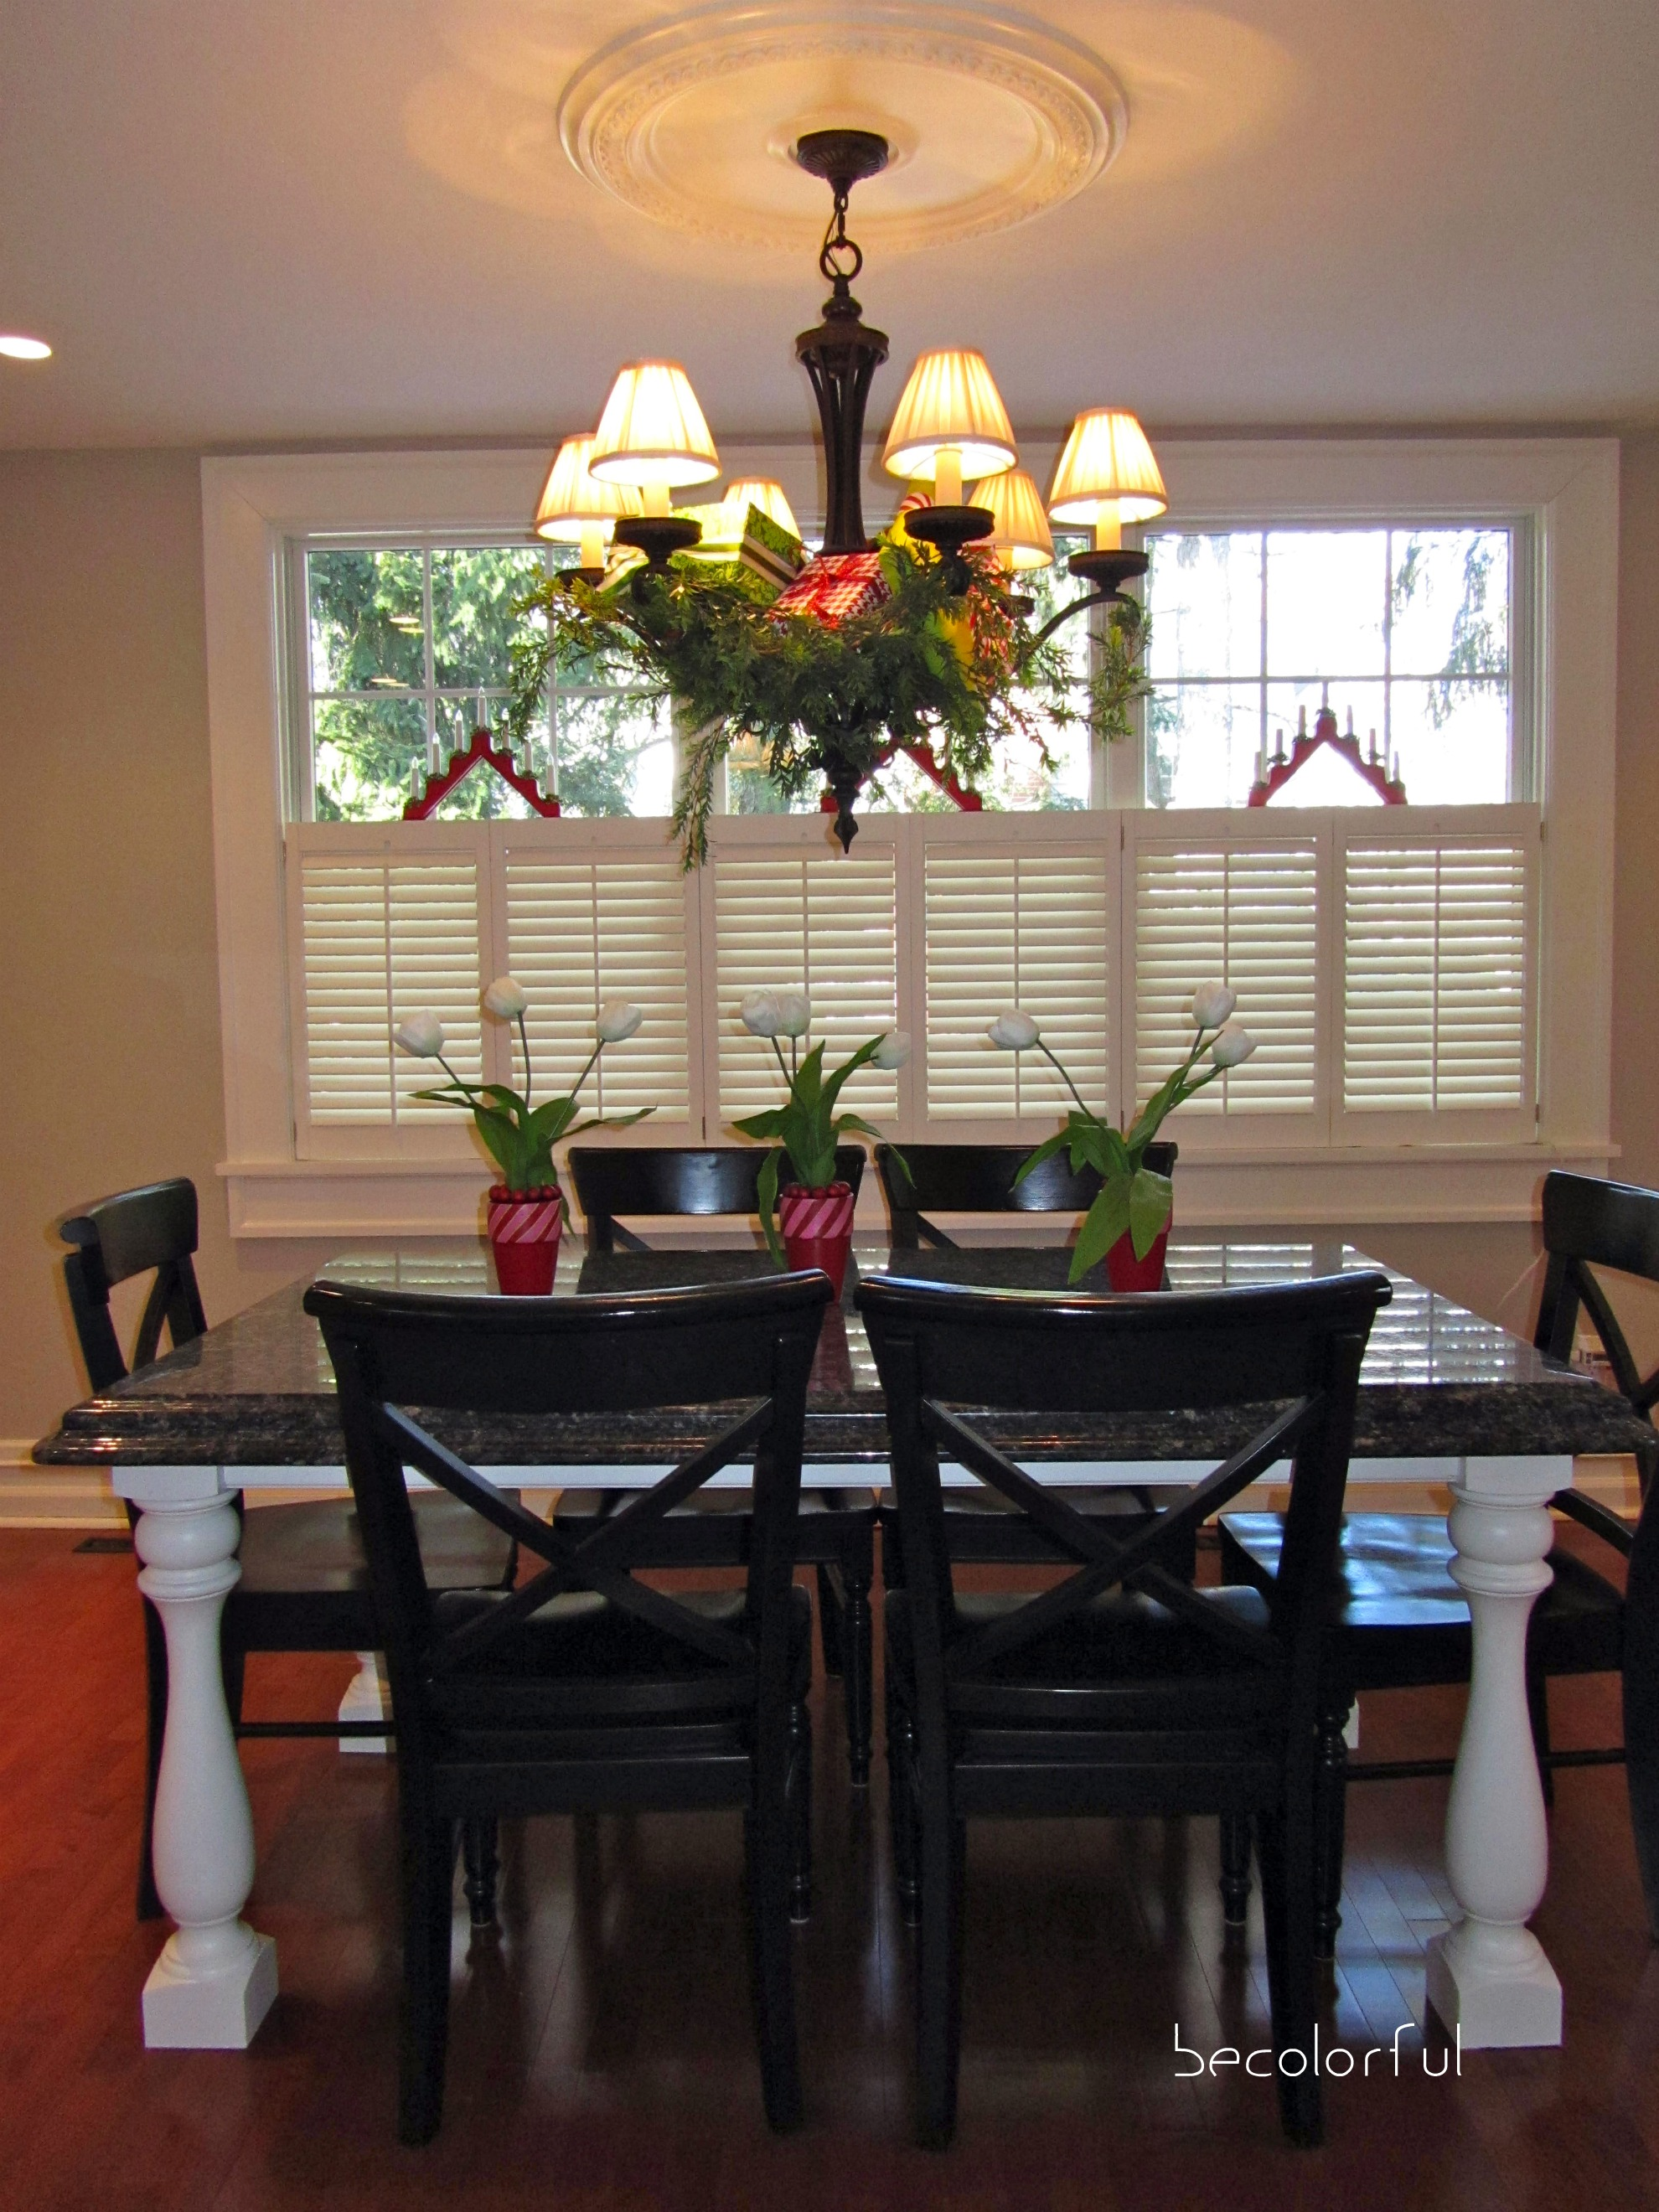 Decorating Your Chandelier for Christmas - Becolorful